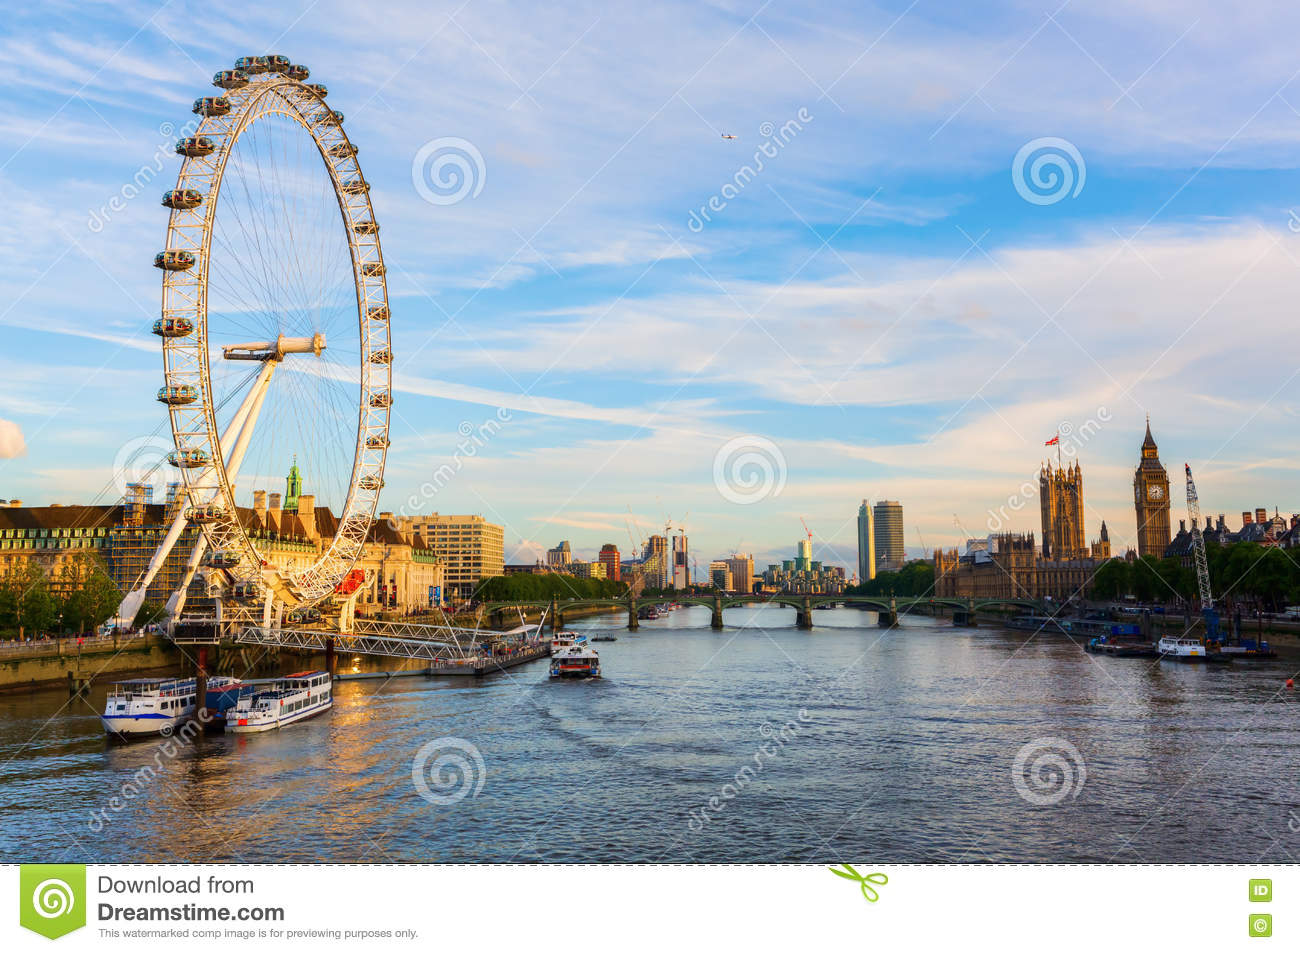 Cityscape of London viewed over the Thames